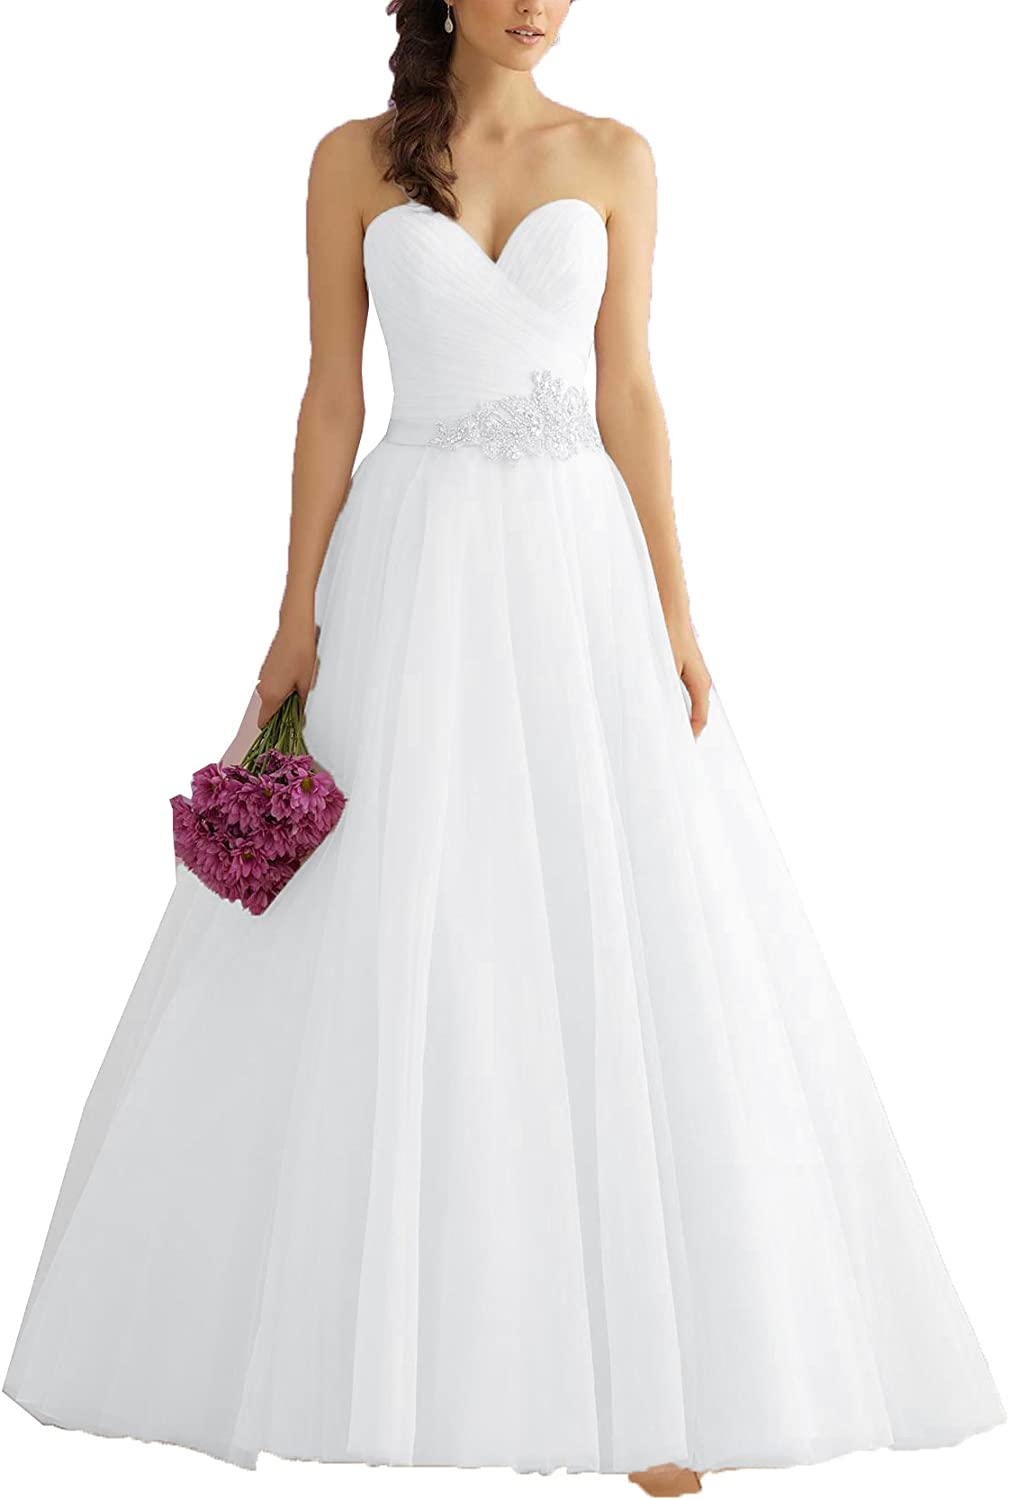 OnlyBridal Women's Strapless A Line Bridal Dresses Tulle Beaded Sashes Wedding Gowns